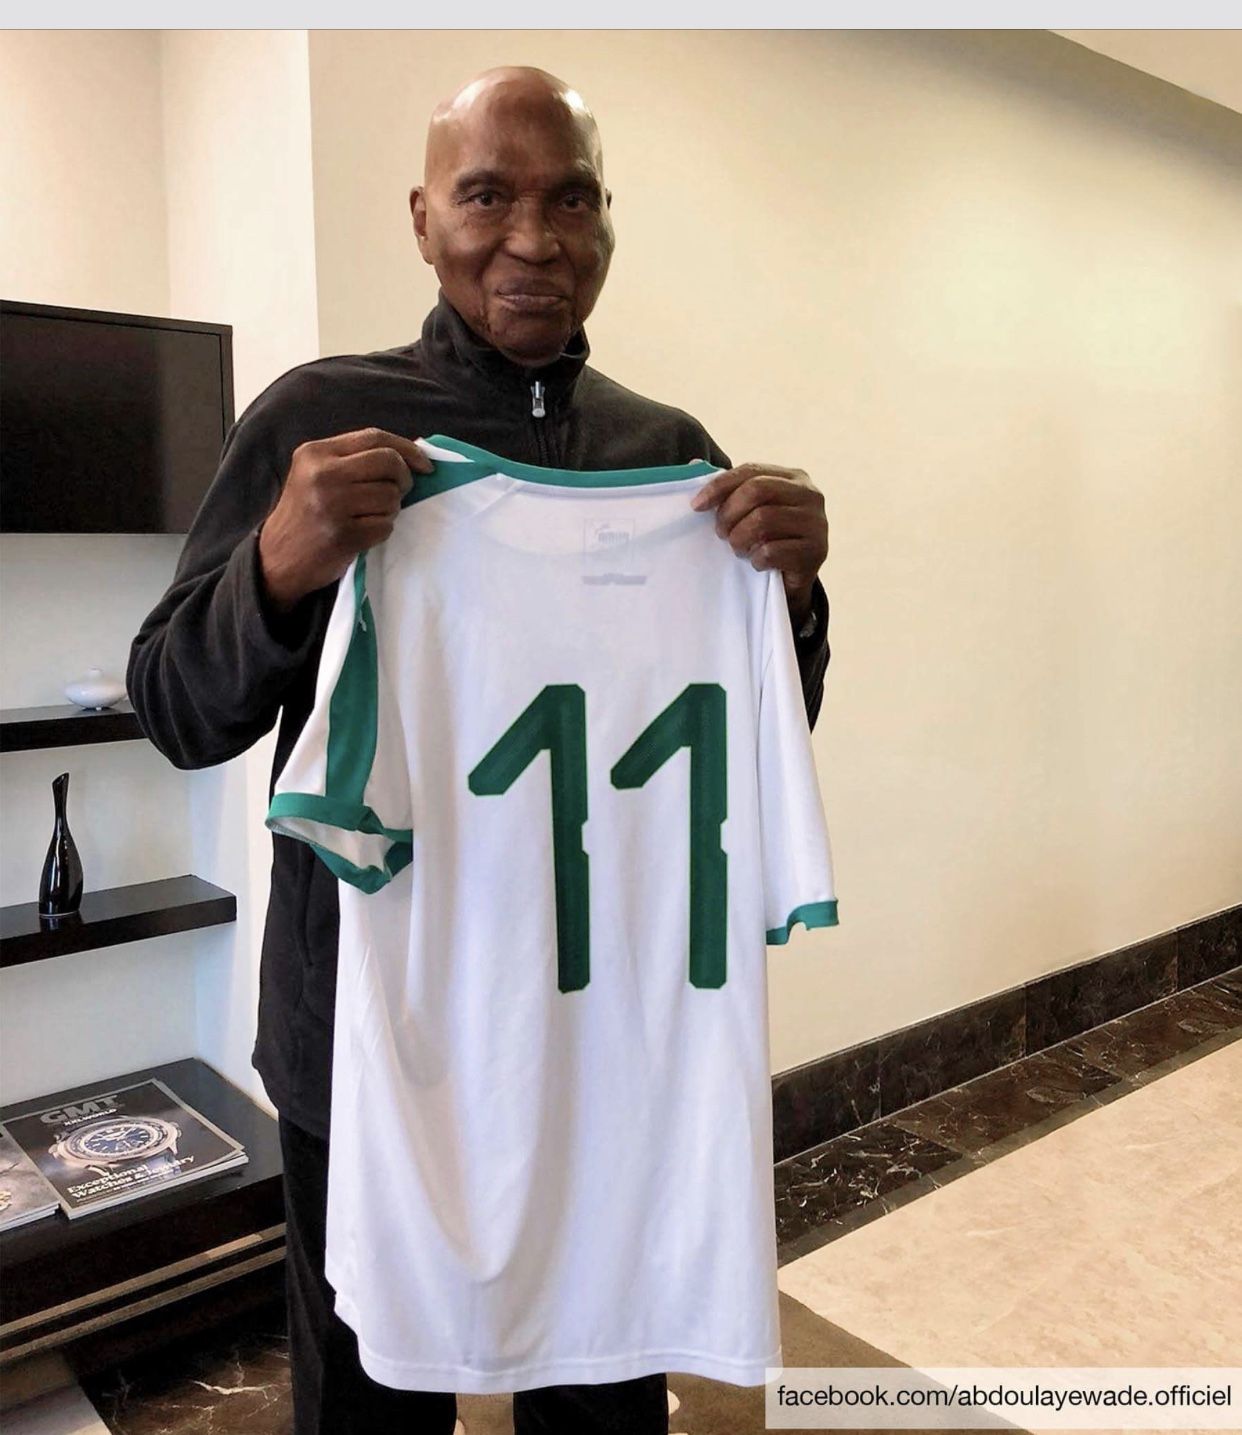 Coupe du monde : Quand Cheikh Ndoye offre son maillot à Abdoulaye Wade